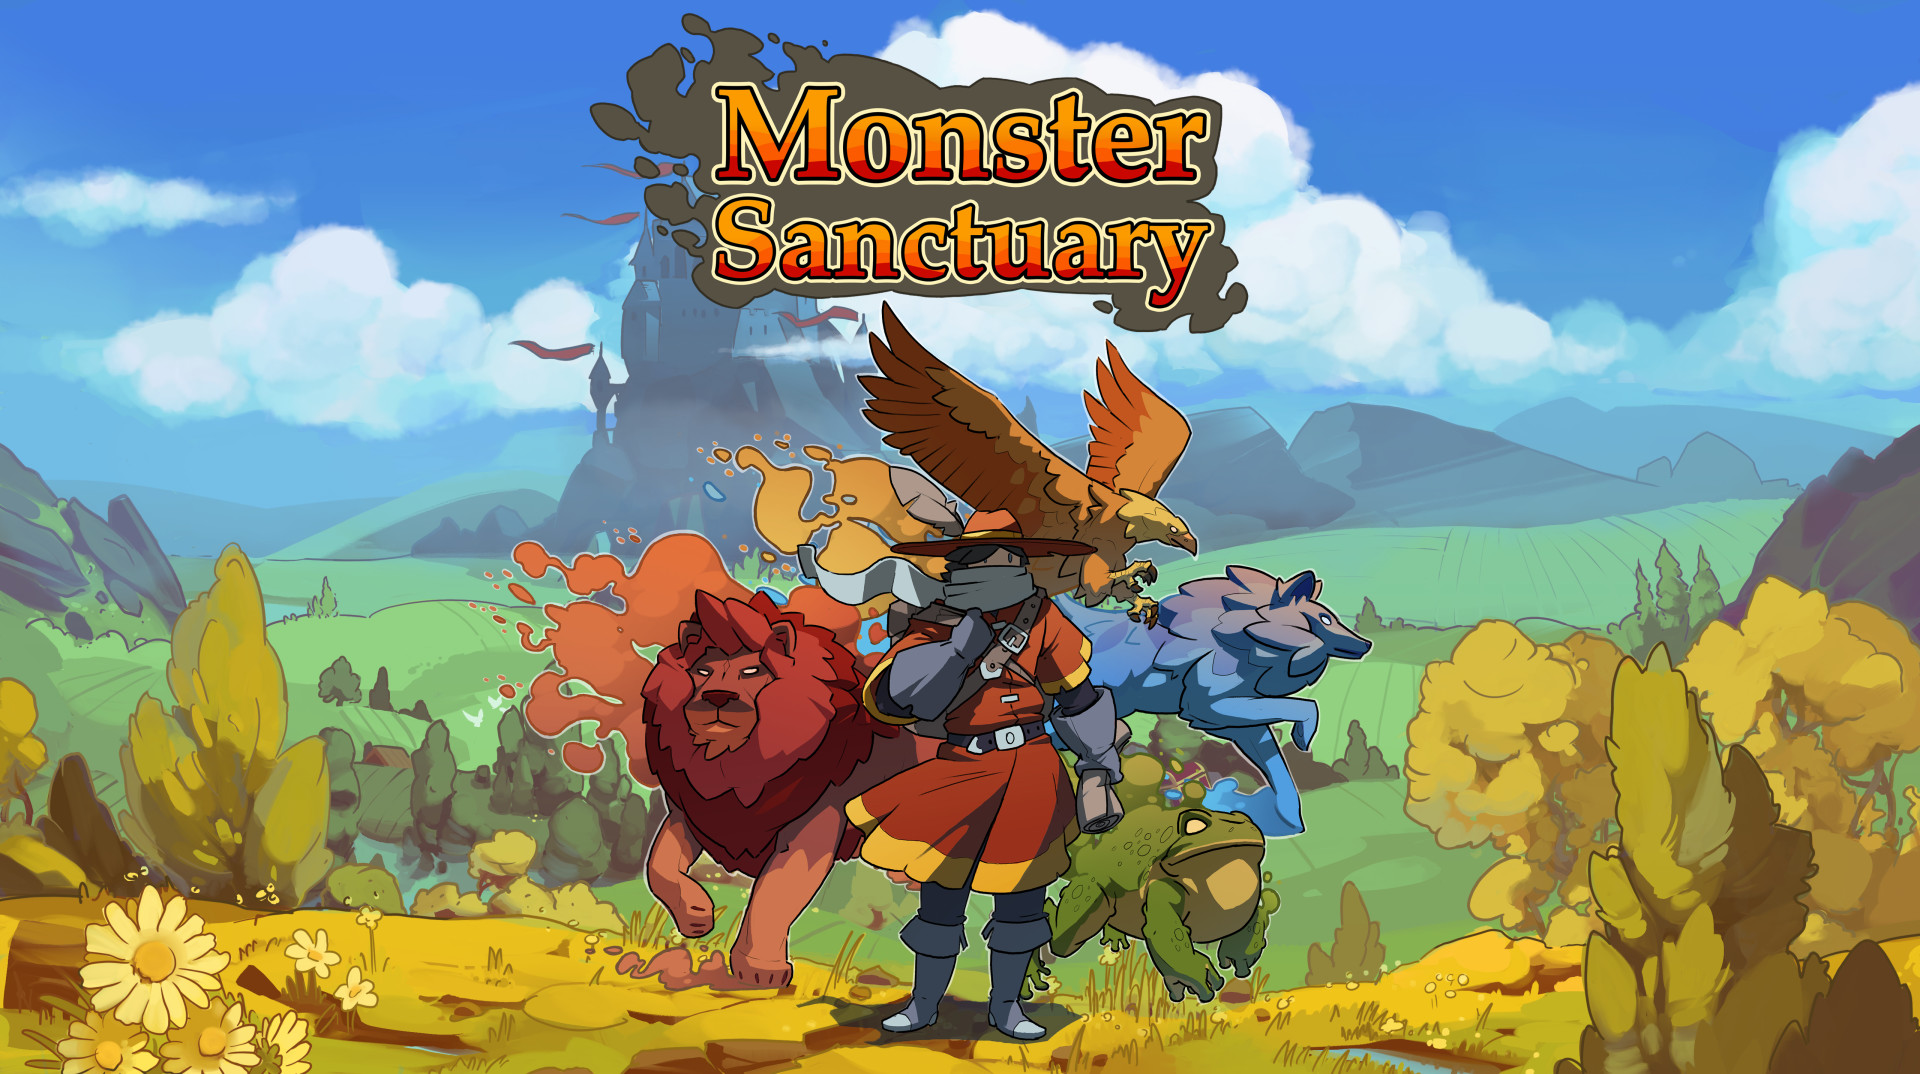 Monster Sanctuary - Everyone's favorite Pokemon/Metroidvania mashup is available to play!